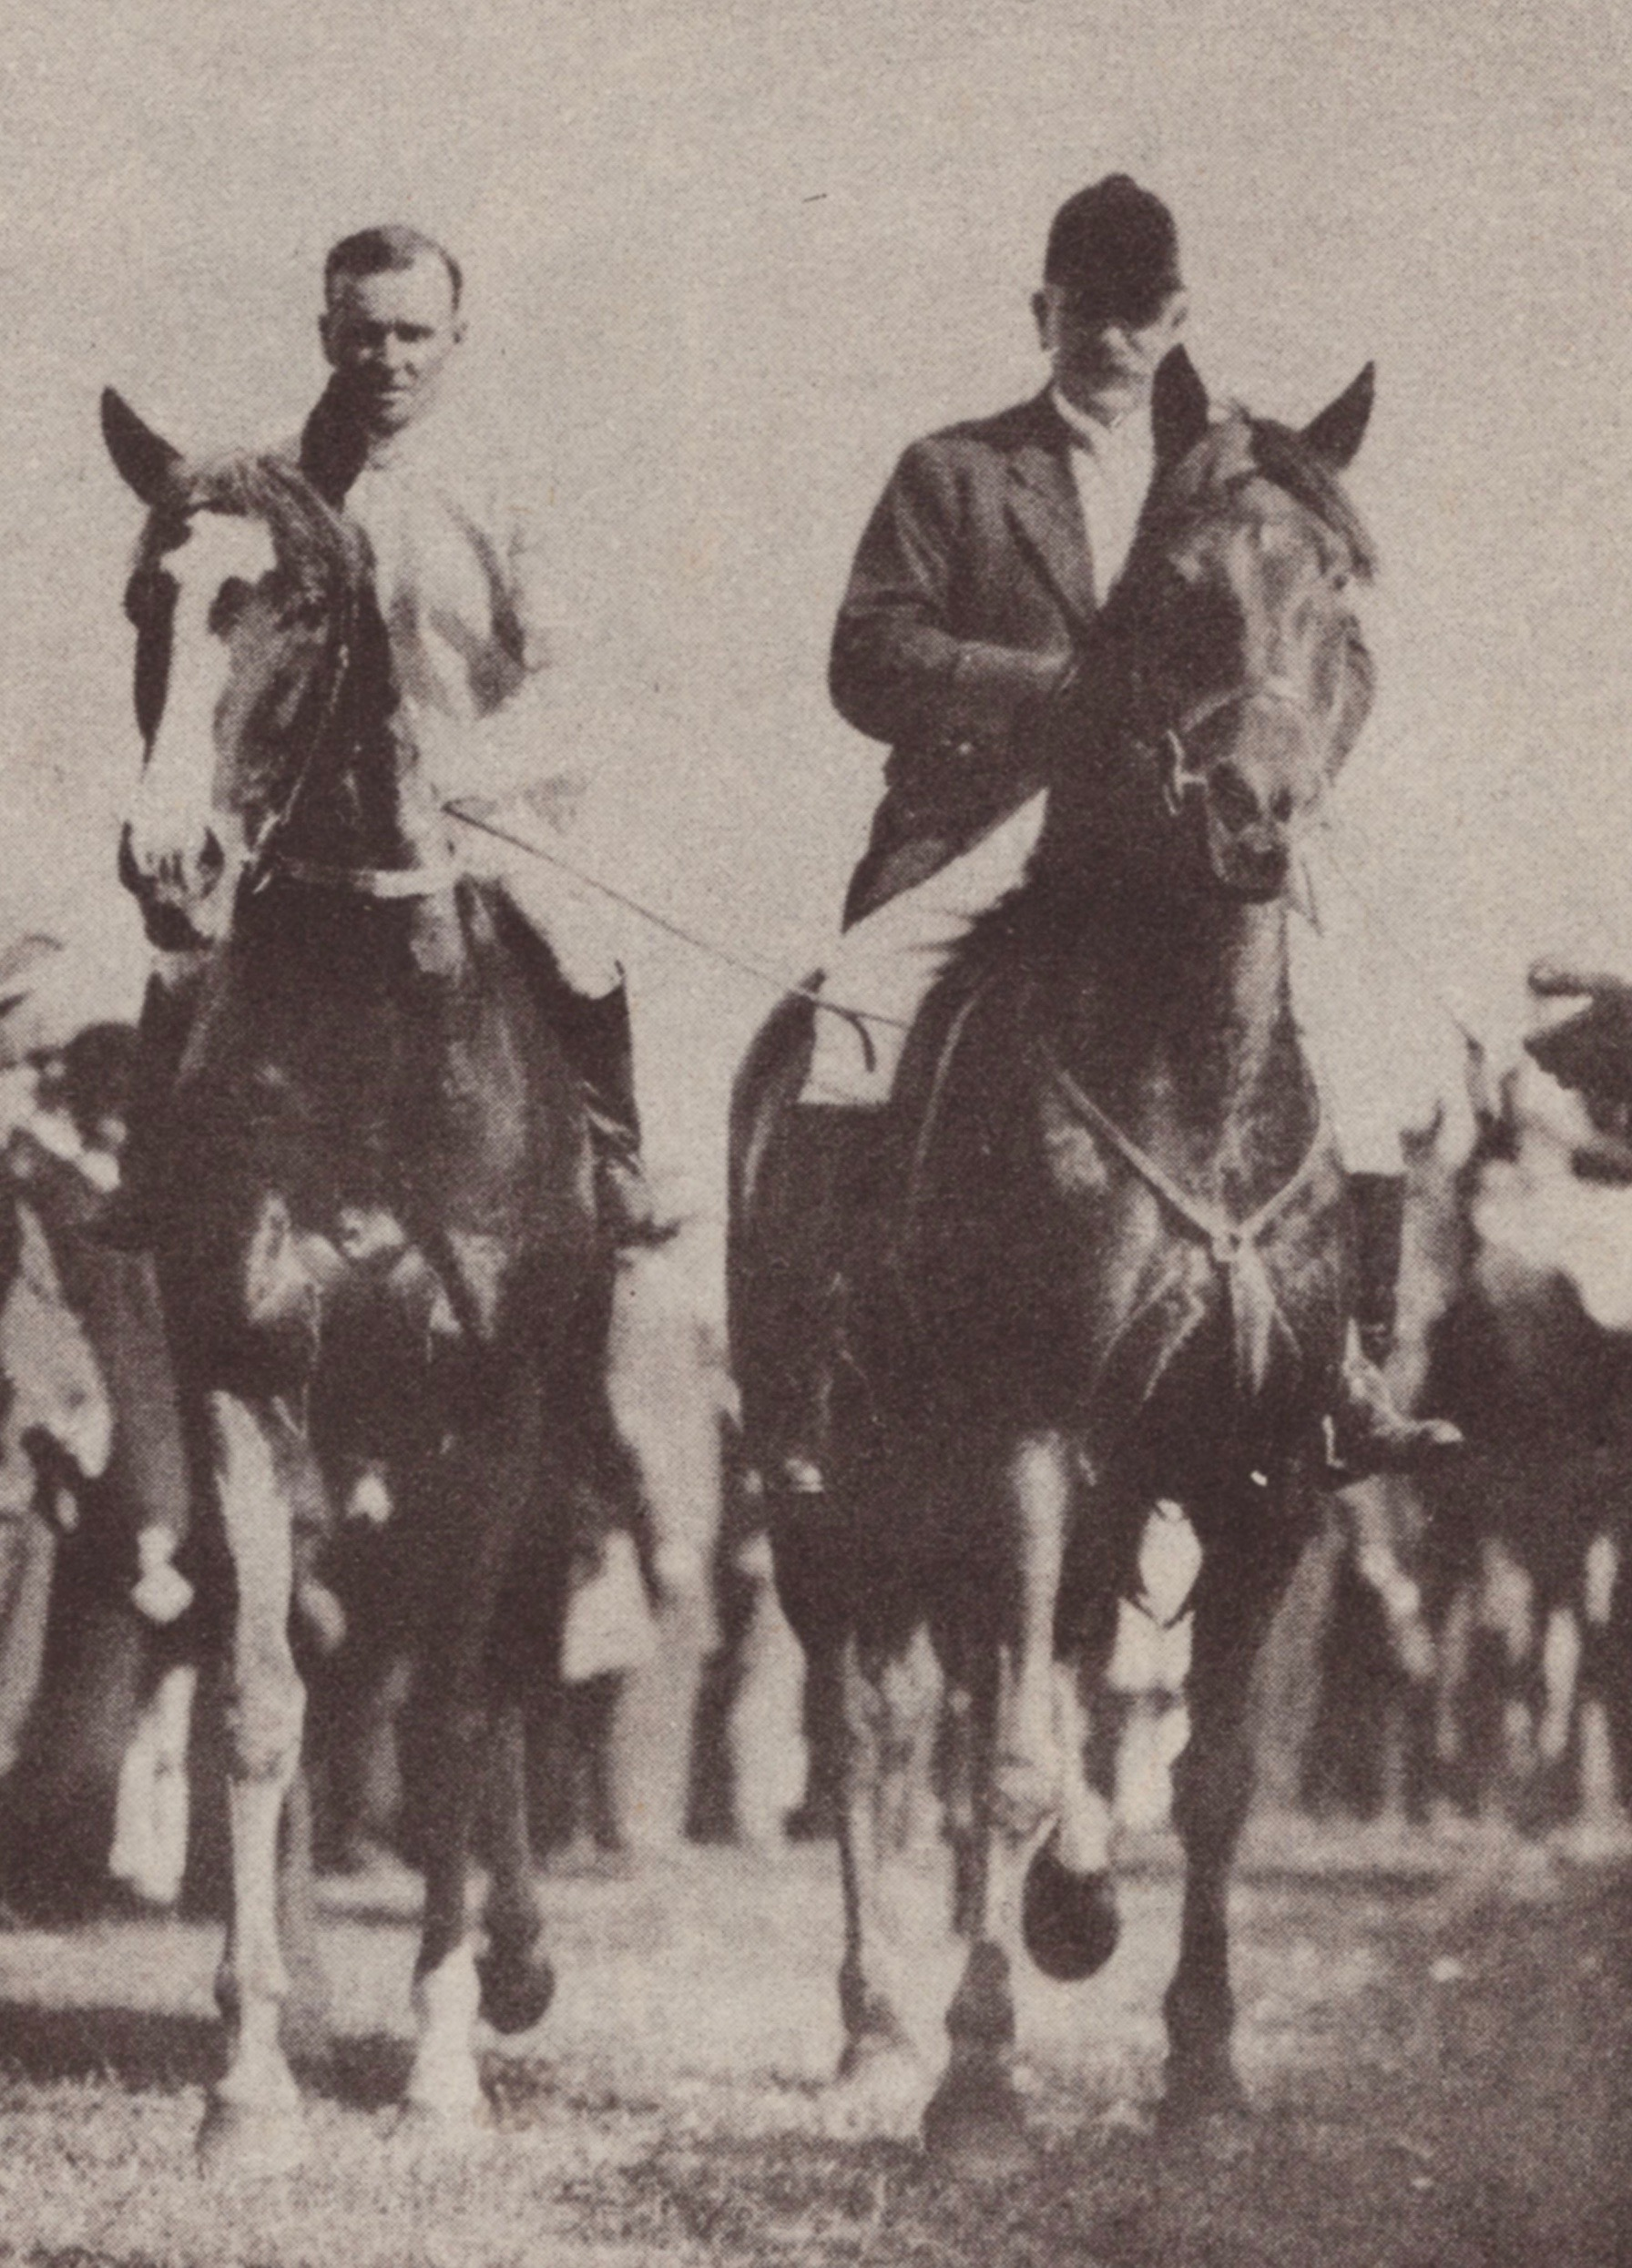 Image courtesy of Barry Collier - Bob returns to scale on his fourth Cup winner Trivalve 1927.